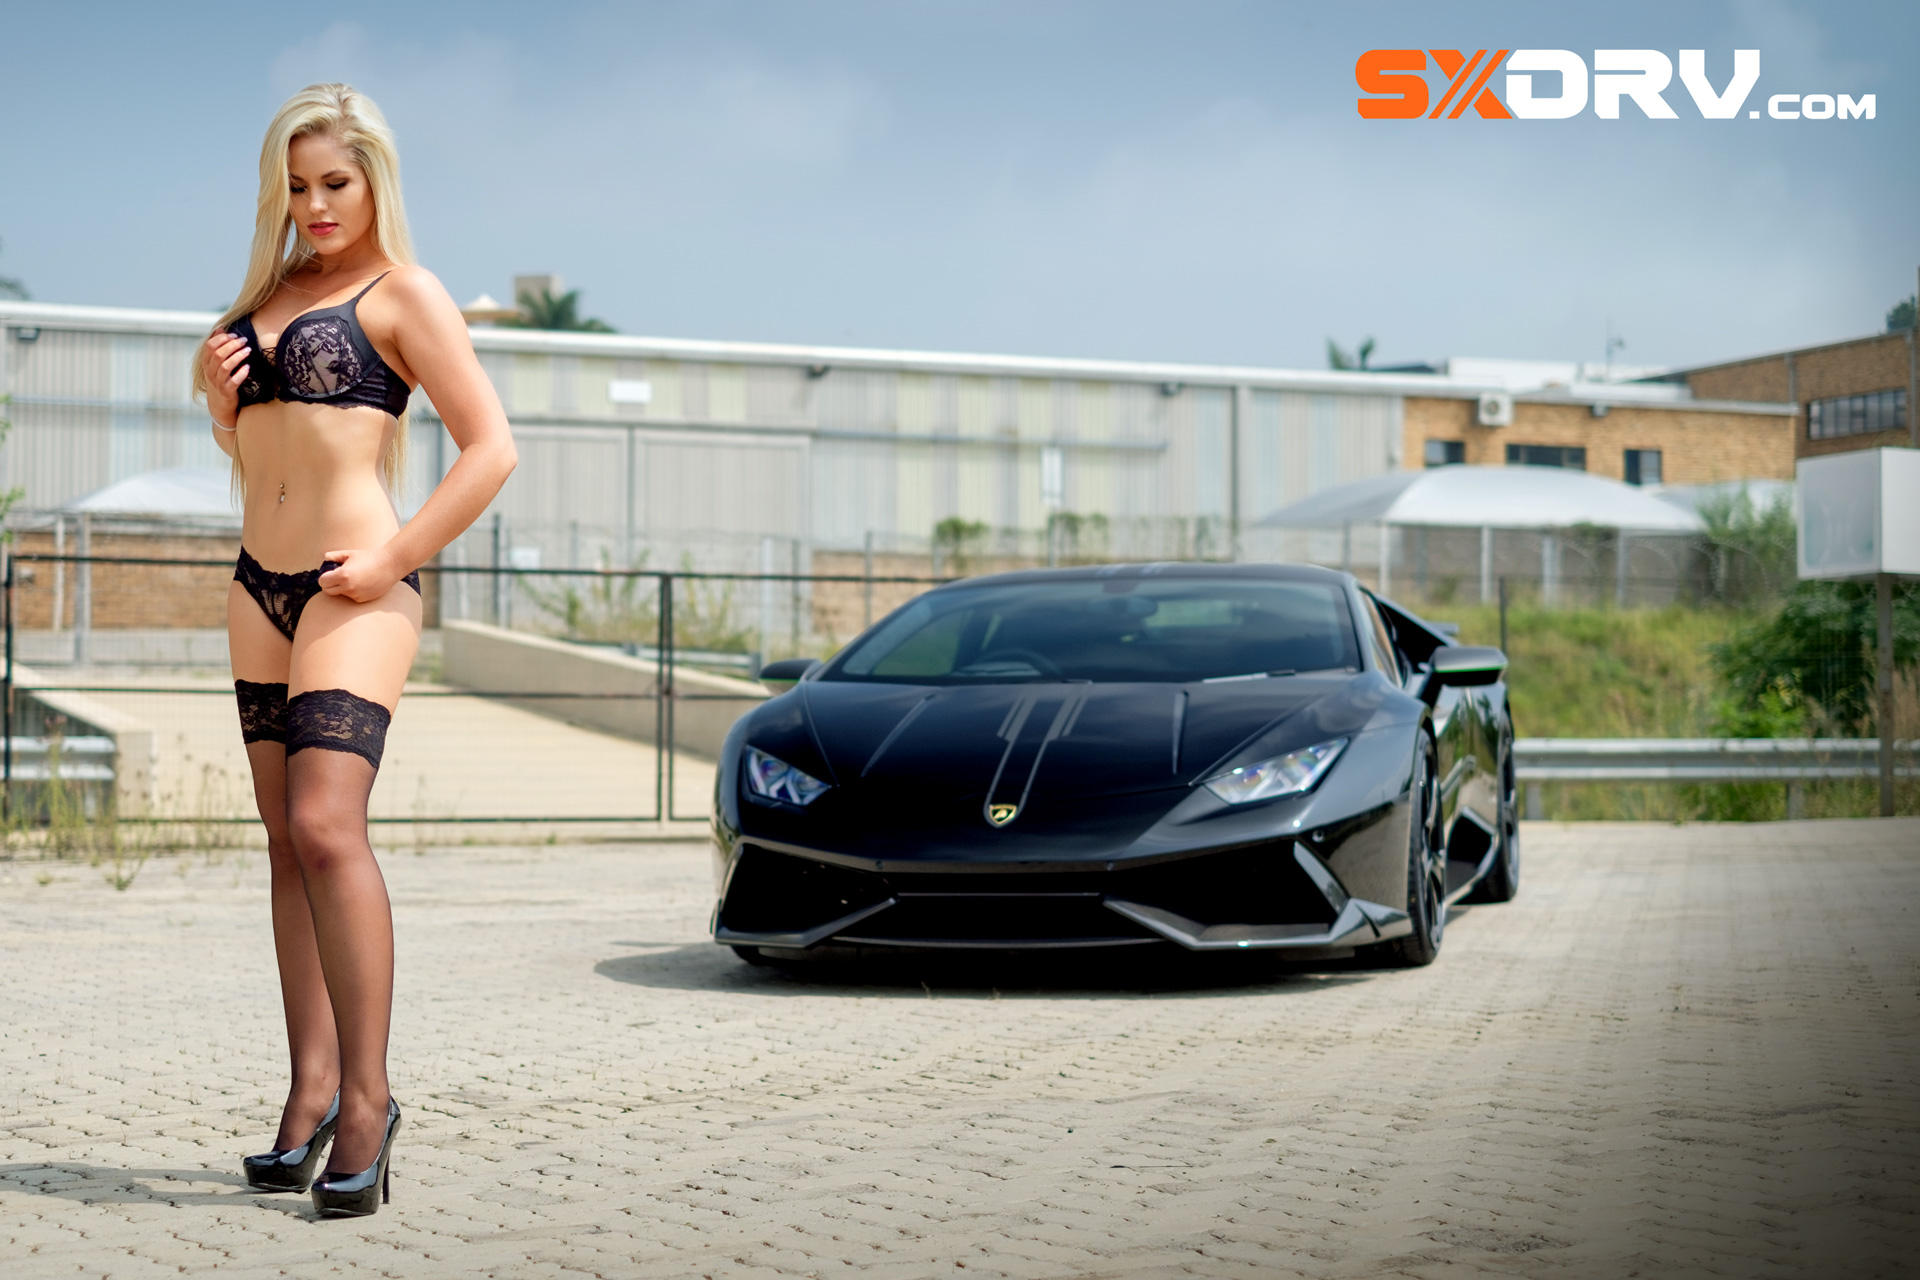 laura bishop lamborghini huracan exclusive interview and pictures 4. Black Bedroom Furniture Sets. Home Design Ideas